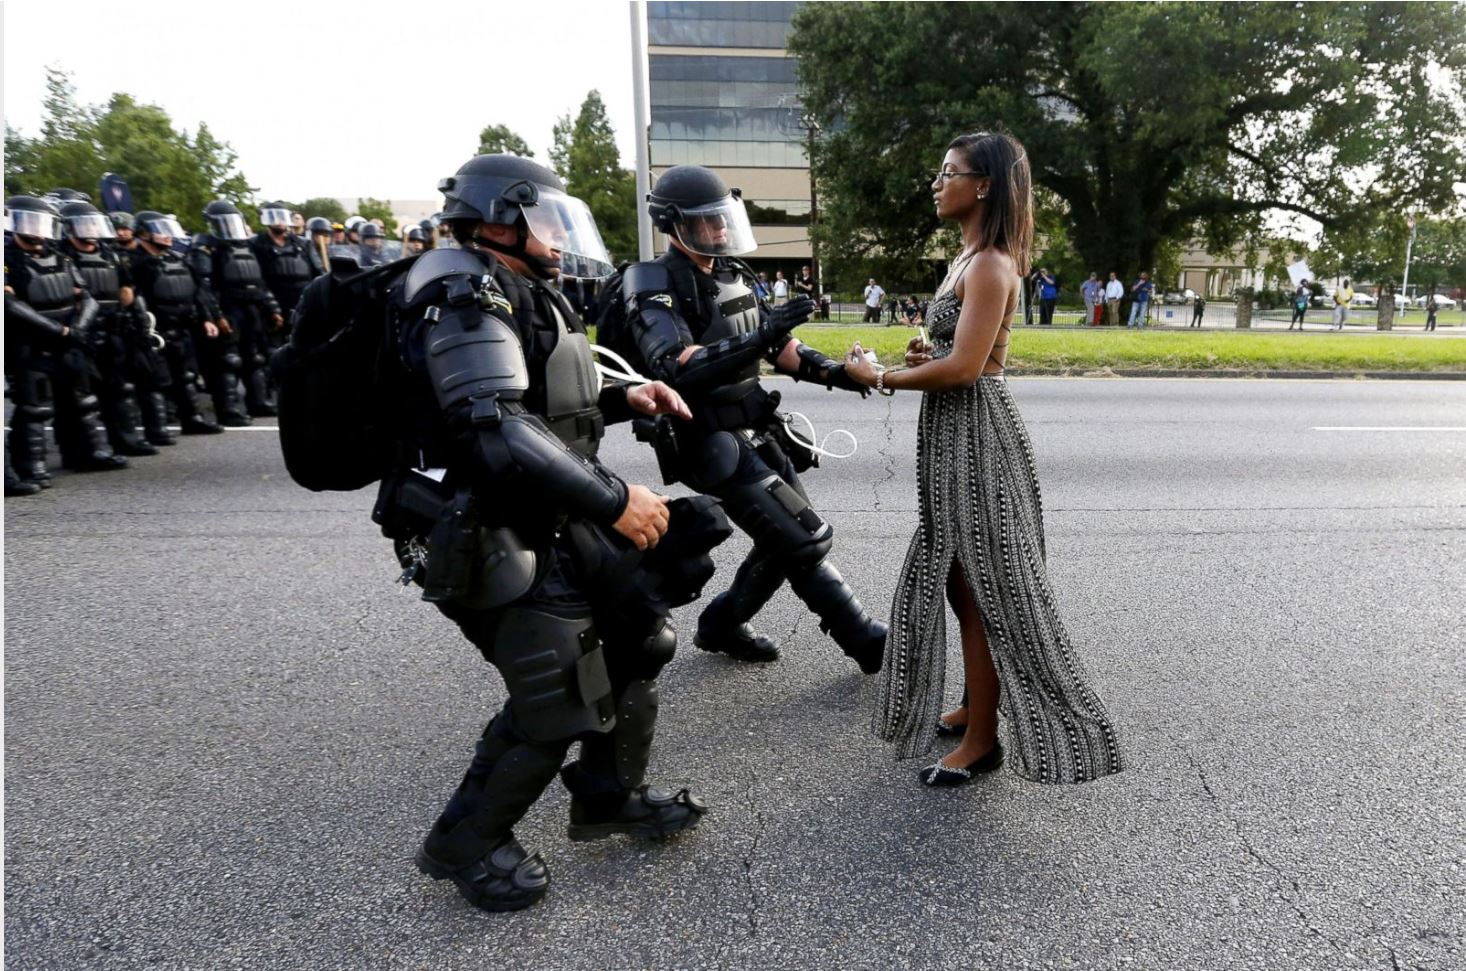 """[Ieshia Evans being detained by law enforcement in Baton Rouge, Louisiana on July 9, 2016, during a protest against police brutality following the murder of Alton Sterling. Source: ABC News article """"Black Lives Matter: A movement in photos""""]"""